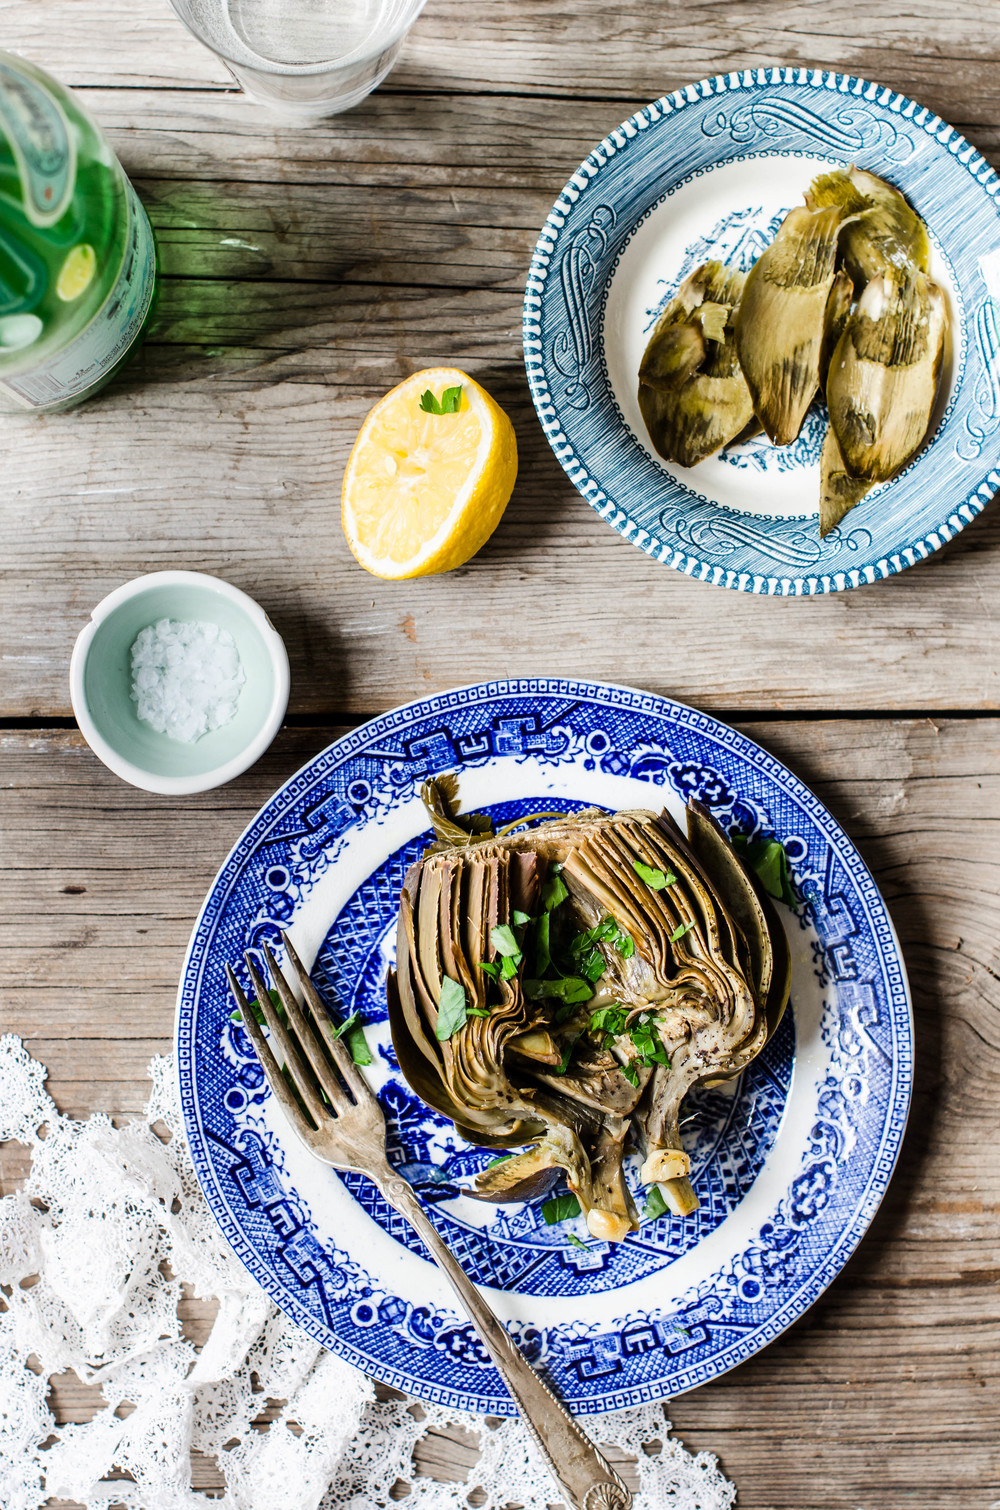 ROSE & IVY Journal Braised Artichokes with Lemon, Garlic and Parsley